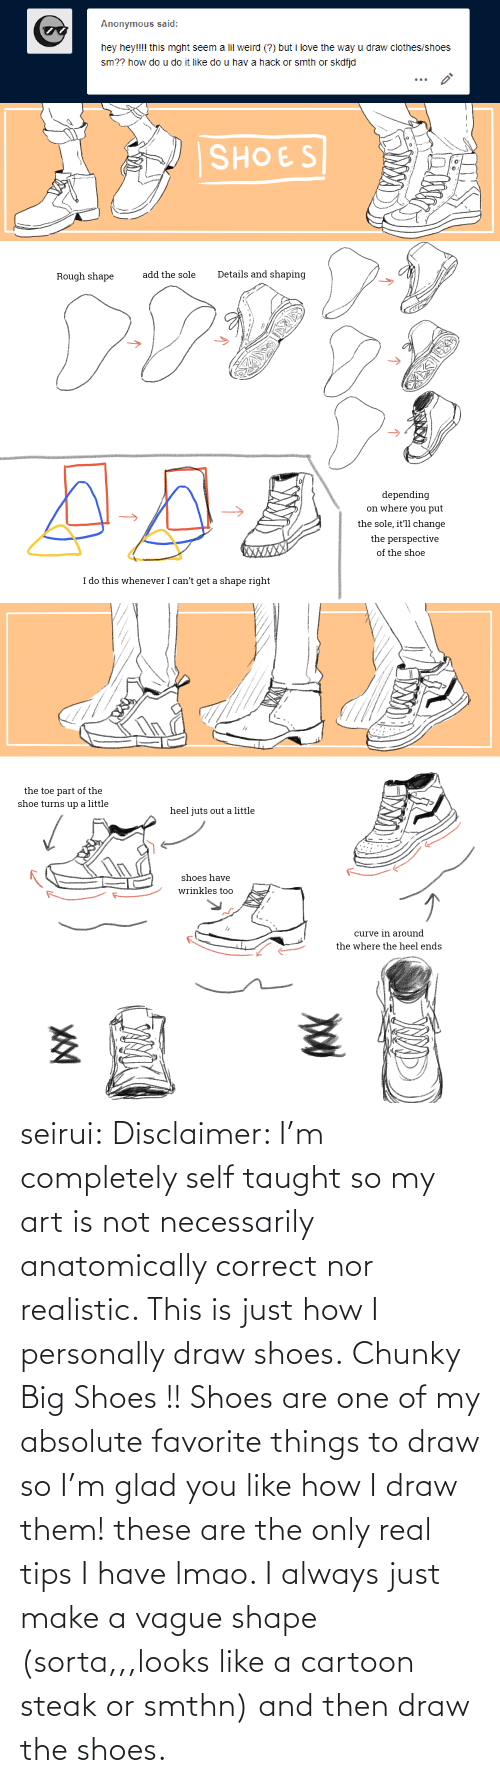 Nor: Anonymous said:  hey hey!!!! this mght seem a lil weird (?) but i love the way u draw clothes/shoes  sm?? how do u do it like do u hav a hack or smth or skdfjd   SHOES  Details and shaping  add the sole  Rough shape  depending  on where you put  the sole, it'll change  the perspective  XWXXX  of the shoe  I do this whenever I can't get a shape right   the toe part of the  shoe turns up a little  heel juts out a little  shoes have  wrinkles too  curve in around  the where the heel ends seirui: Disclaimer: I'm completely self taught so my art is not necessarily anatomically correct nor realistic. This is just how I personally draw shoes. Chunky Big Shoes !! Shoes are one of my absolute favorite things to draw so I'm glad you like how I draw them! these are the only real tips I have lmao. I always just make a vague shape (sorta,,,looks like a cartoon steak or smthn) and then draw the shoes.